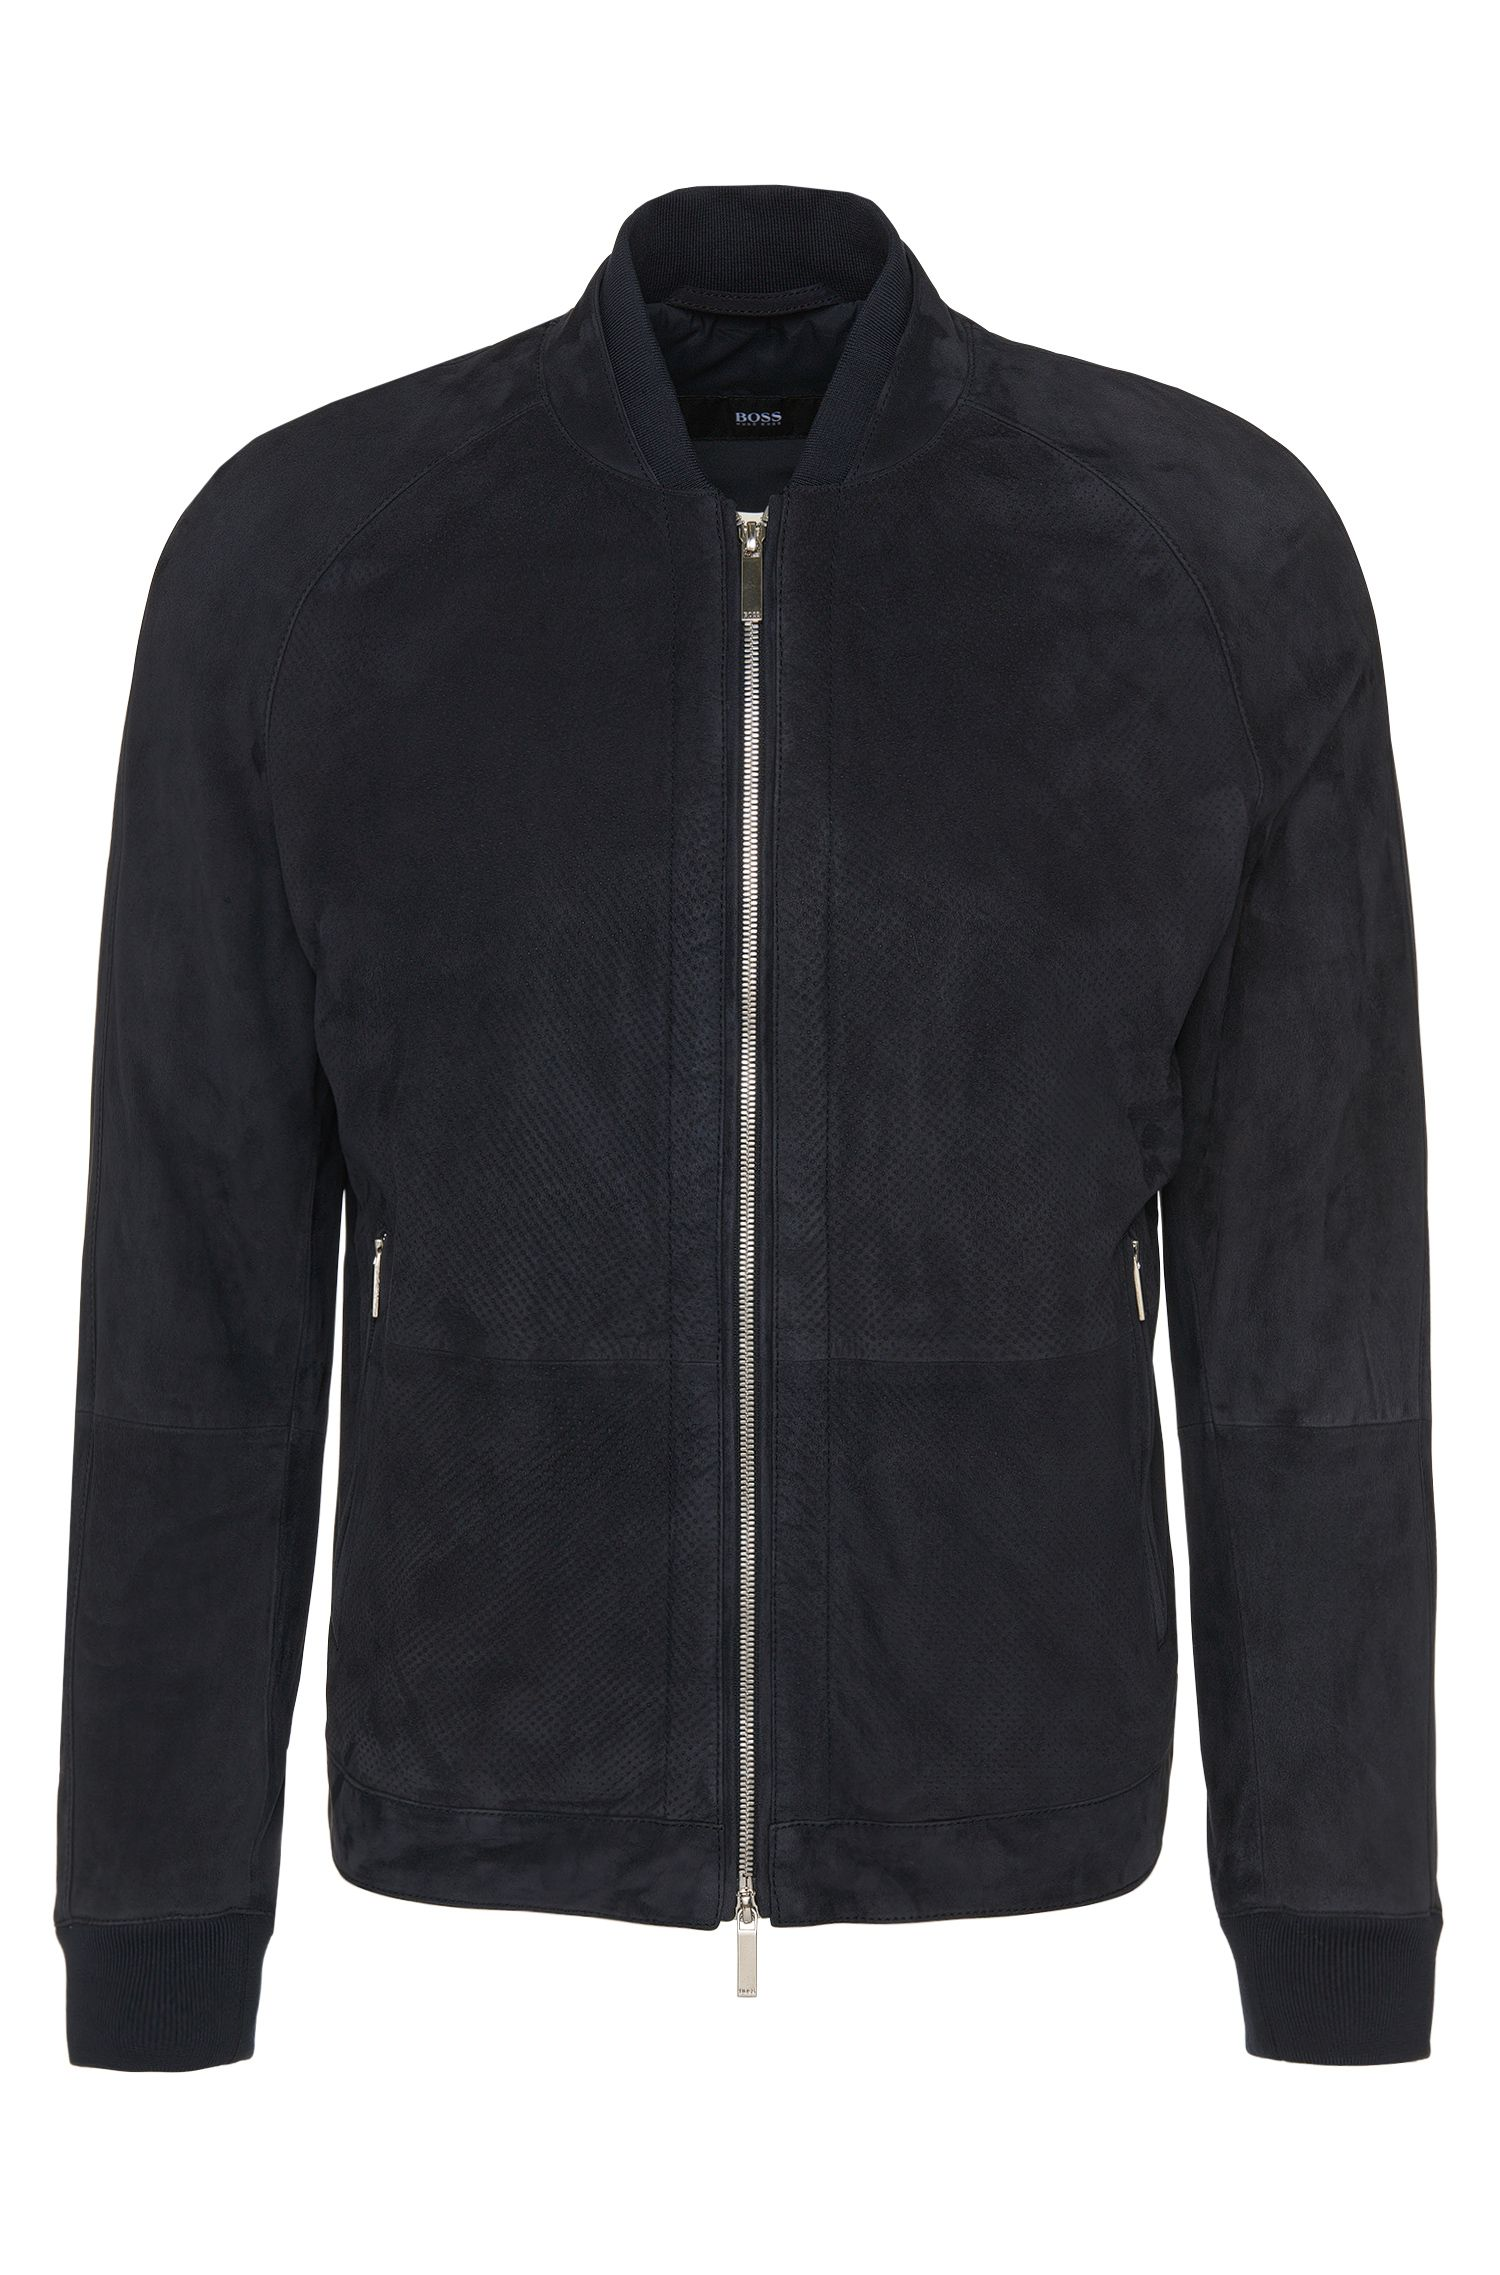 'Gorin' | Goat Suede Leather Perforated Jacket